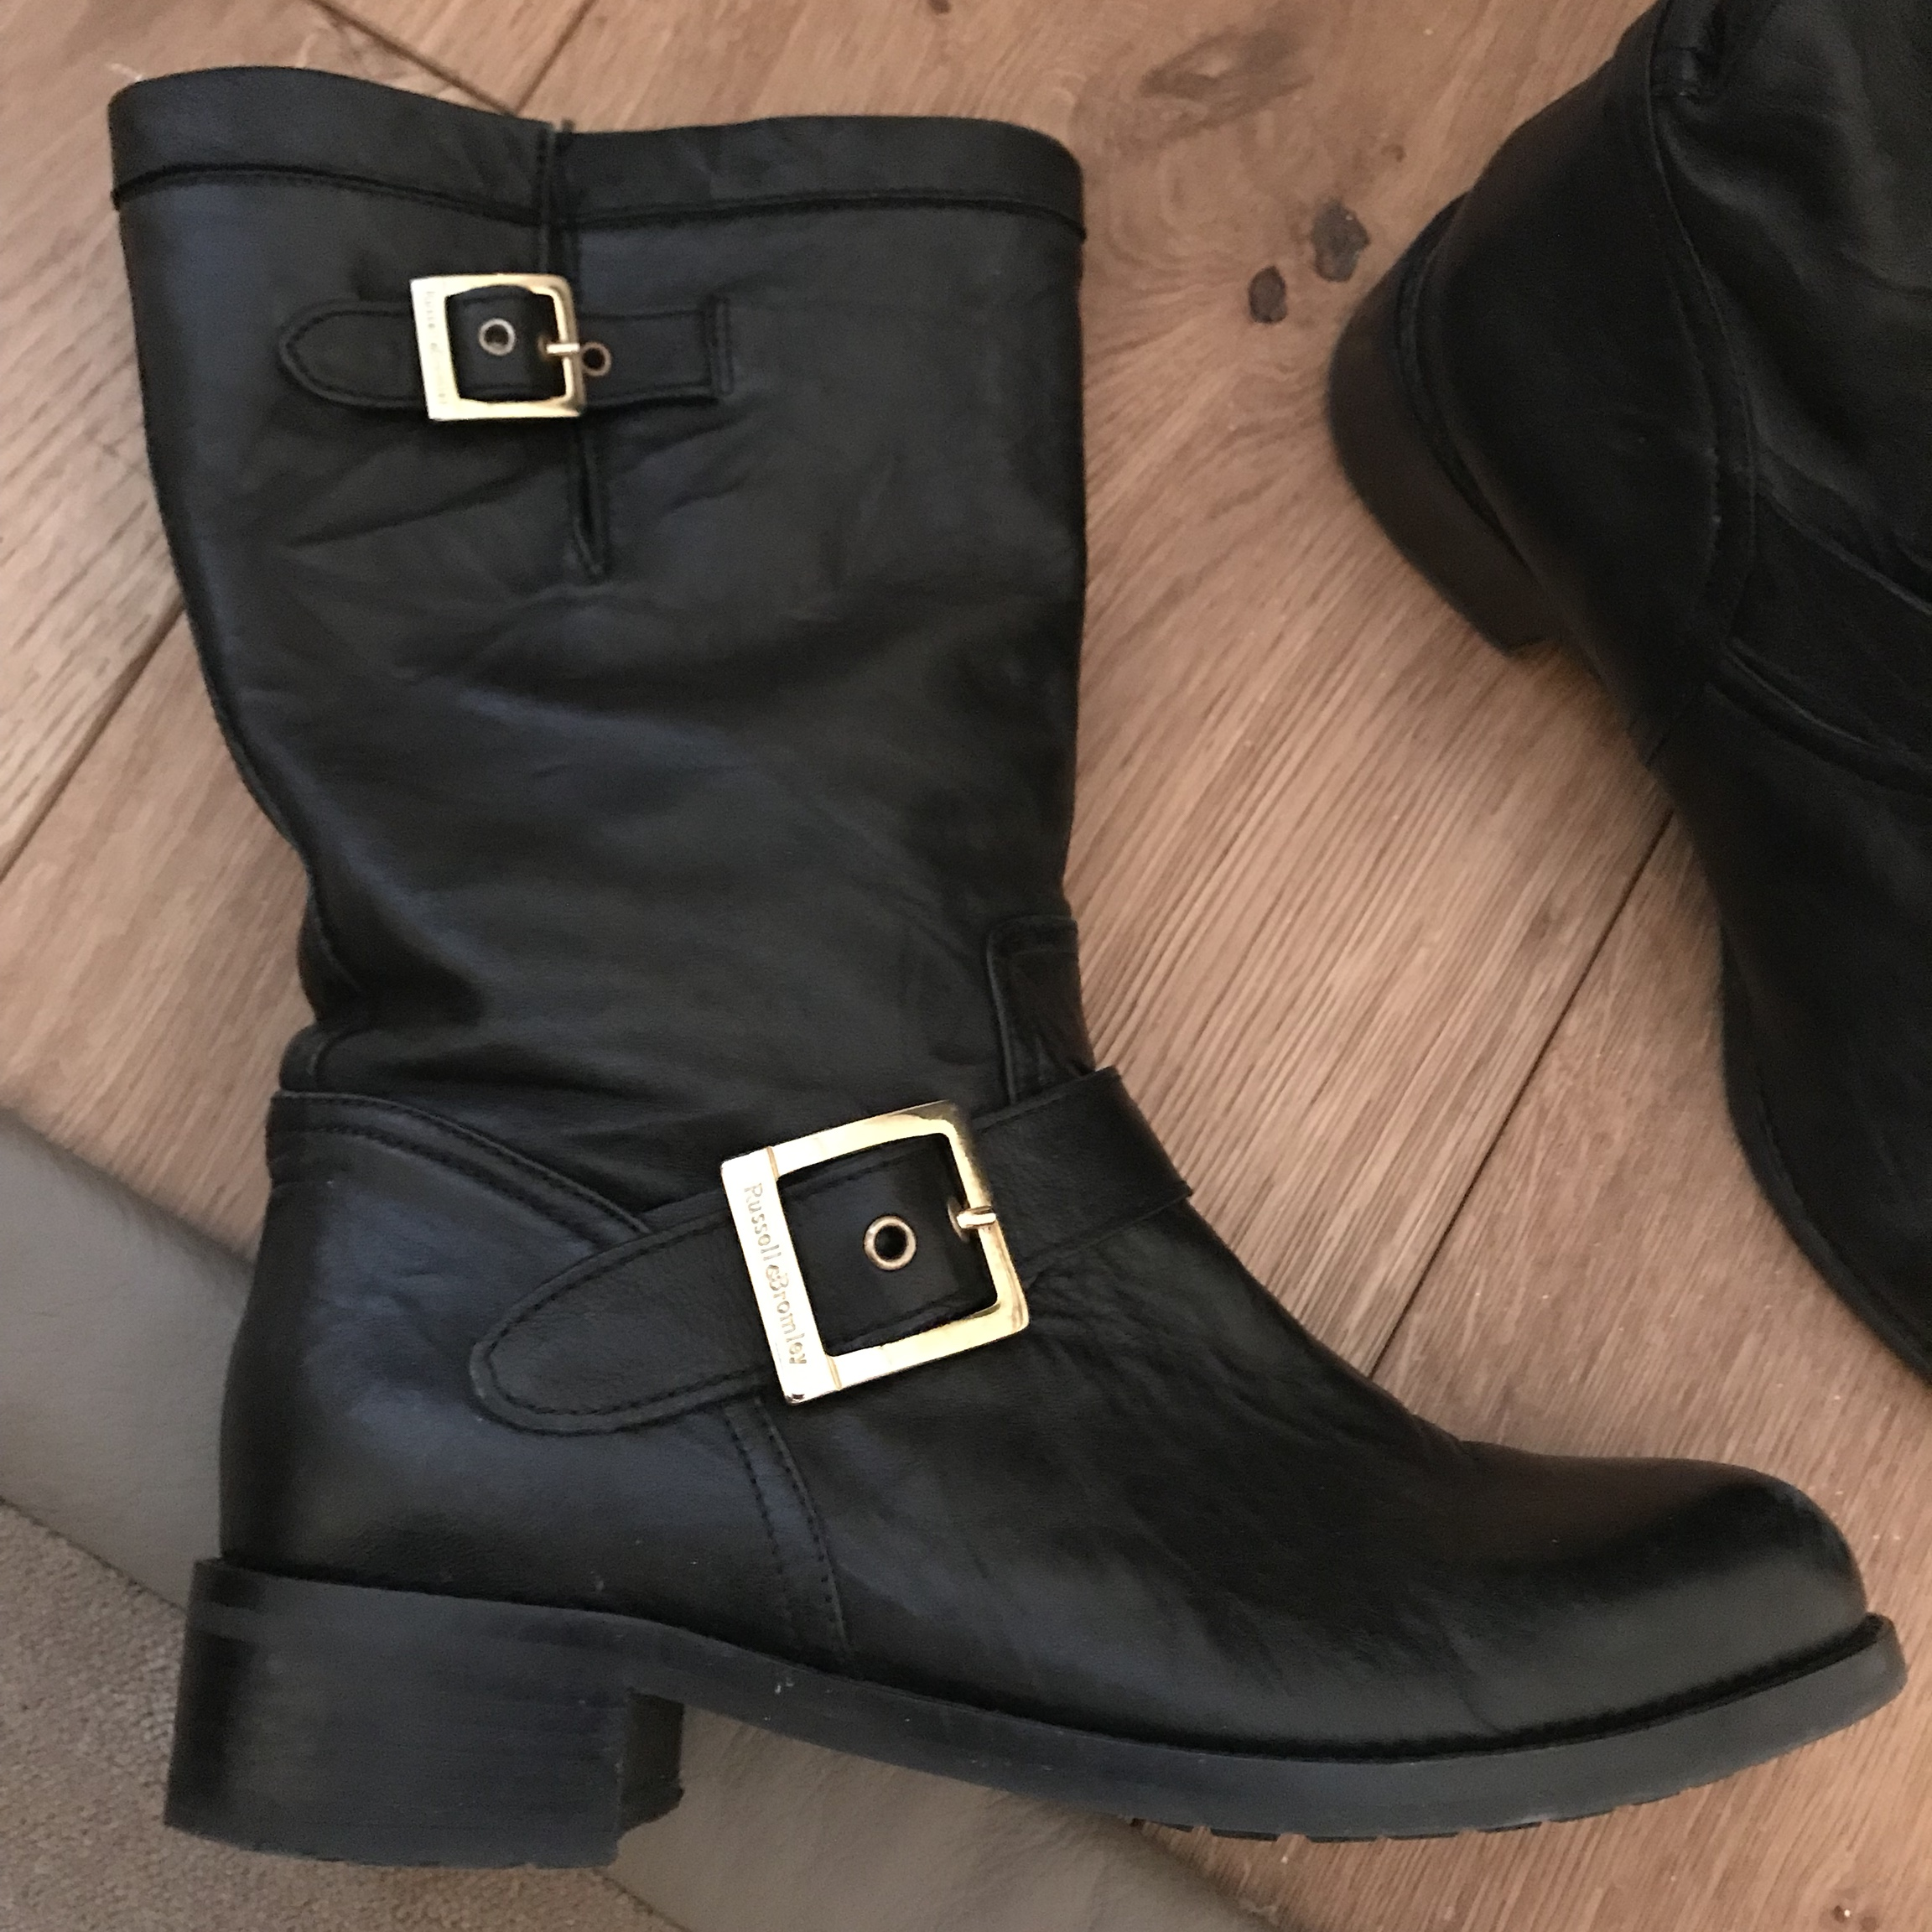 🖤🖤 RUSSELL AND BROMLEY BIKER BOOTS